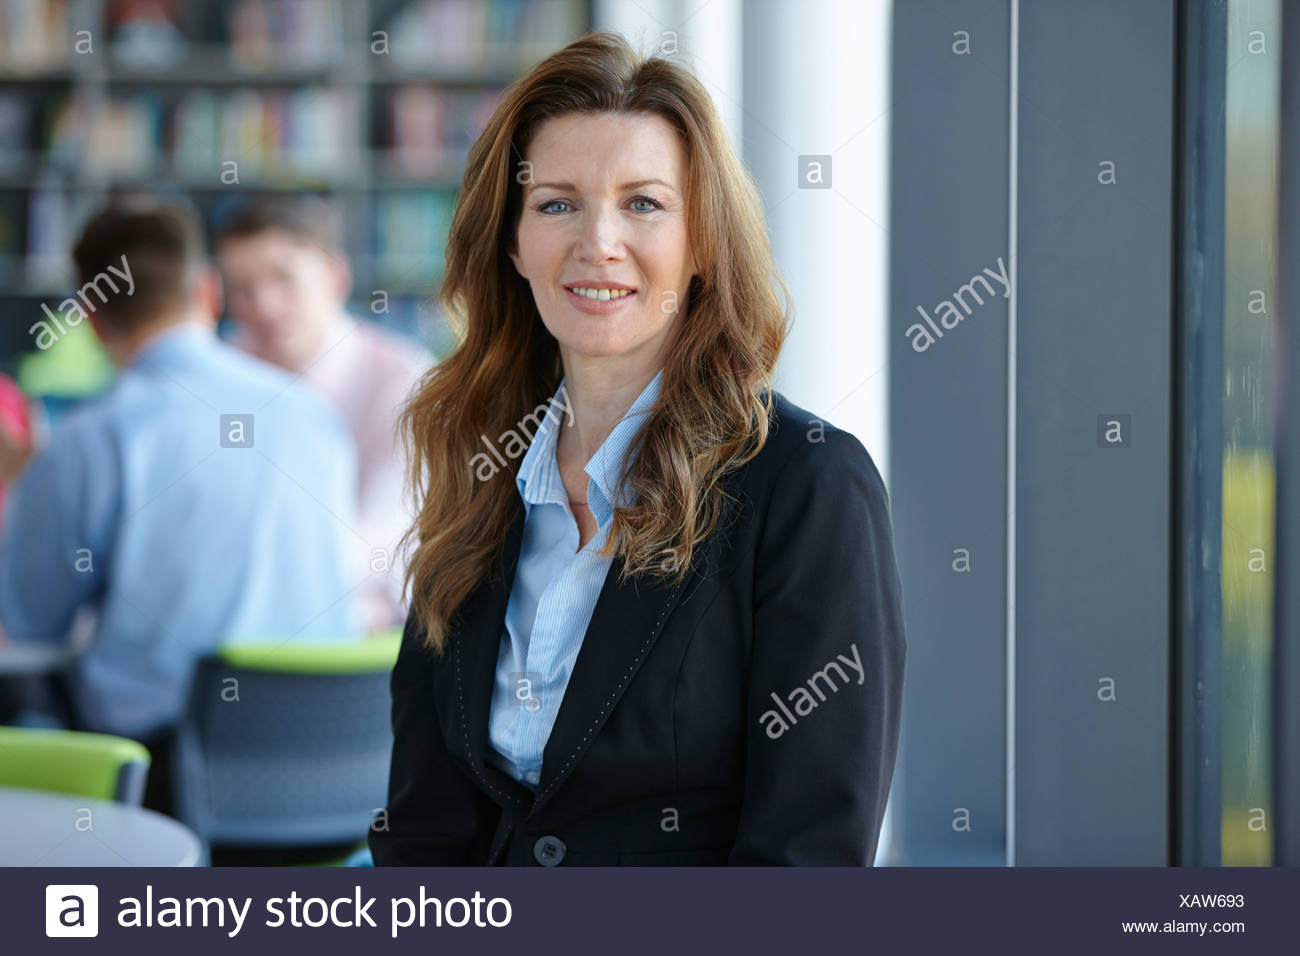 Portrait of mature businesswoman with long hair - Stock Image